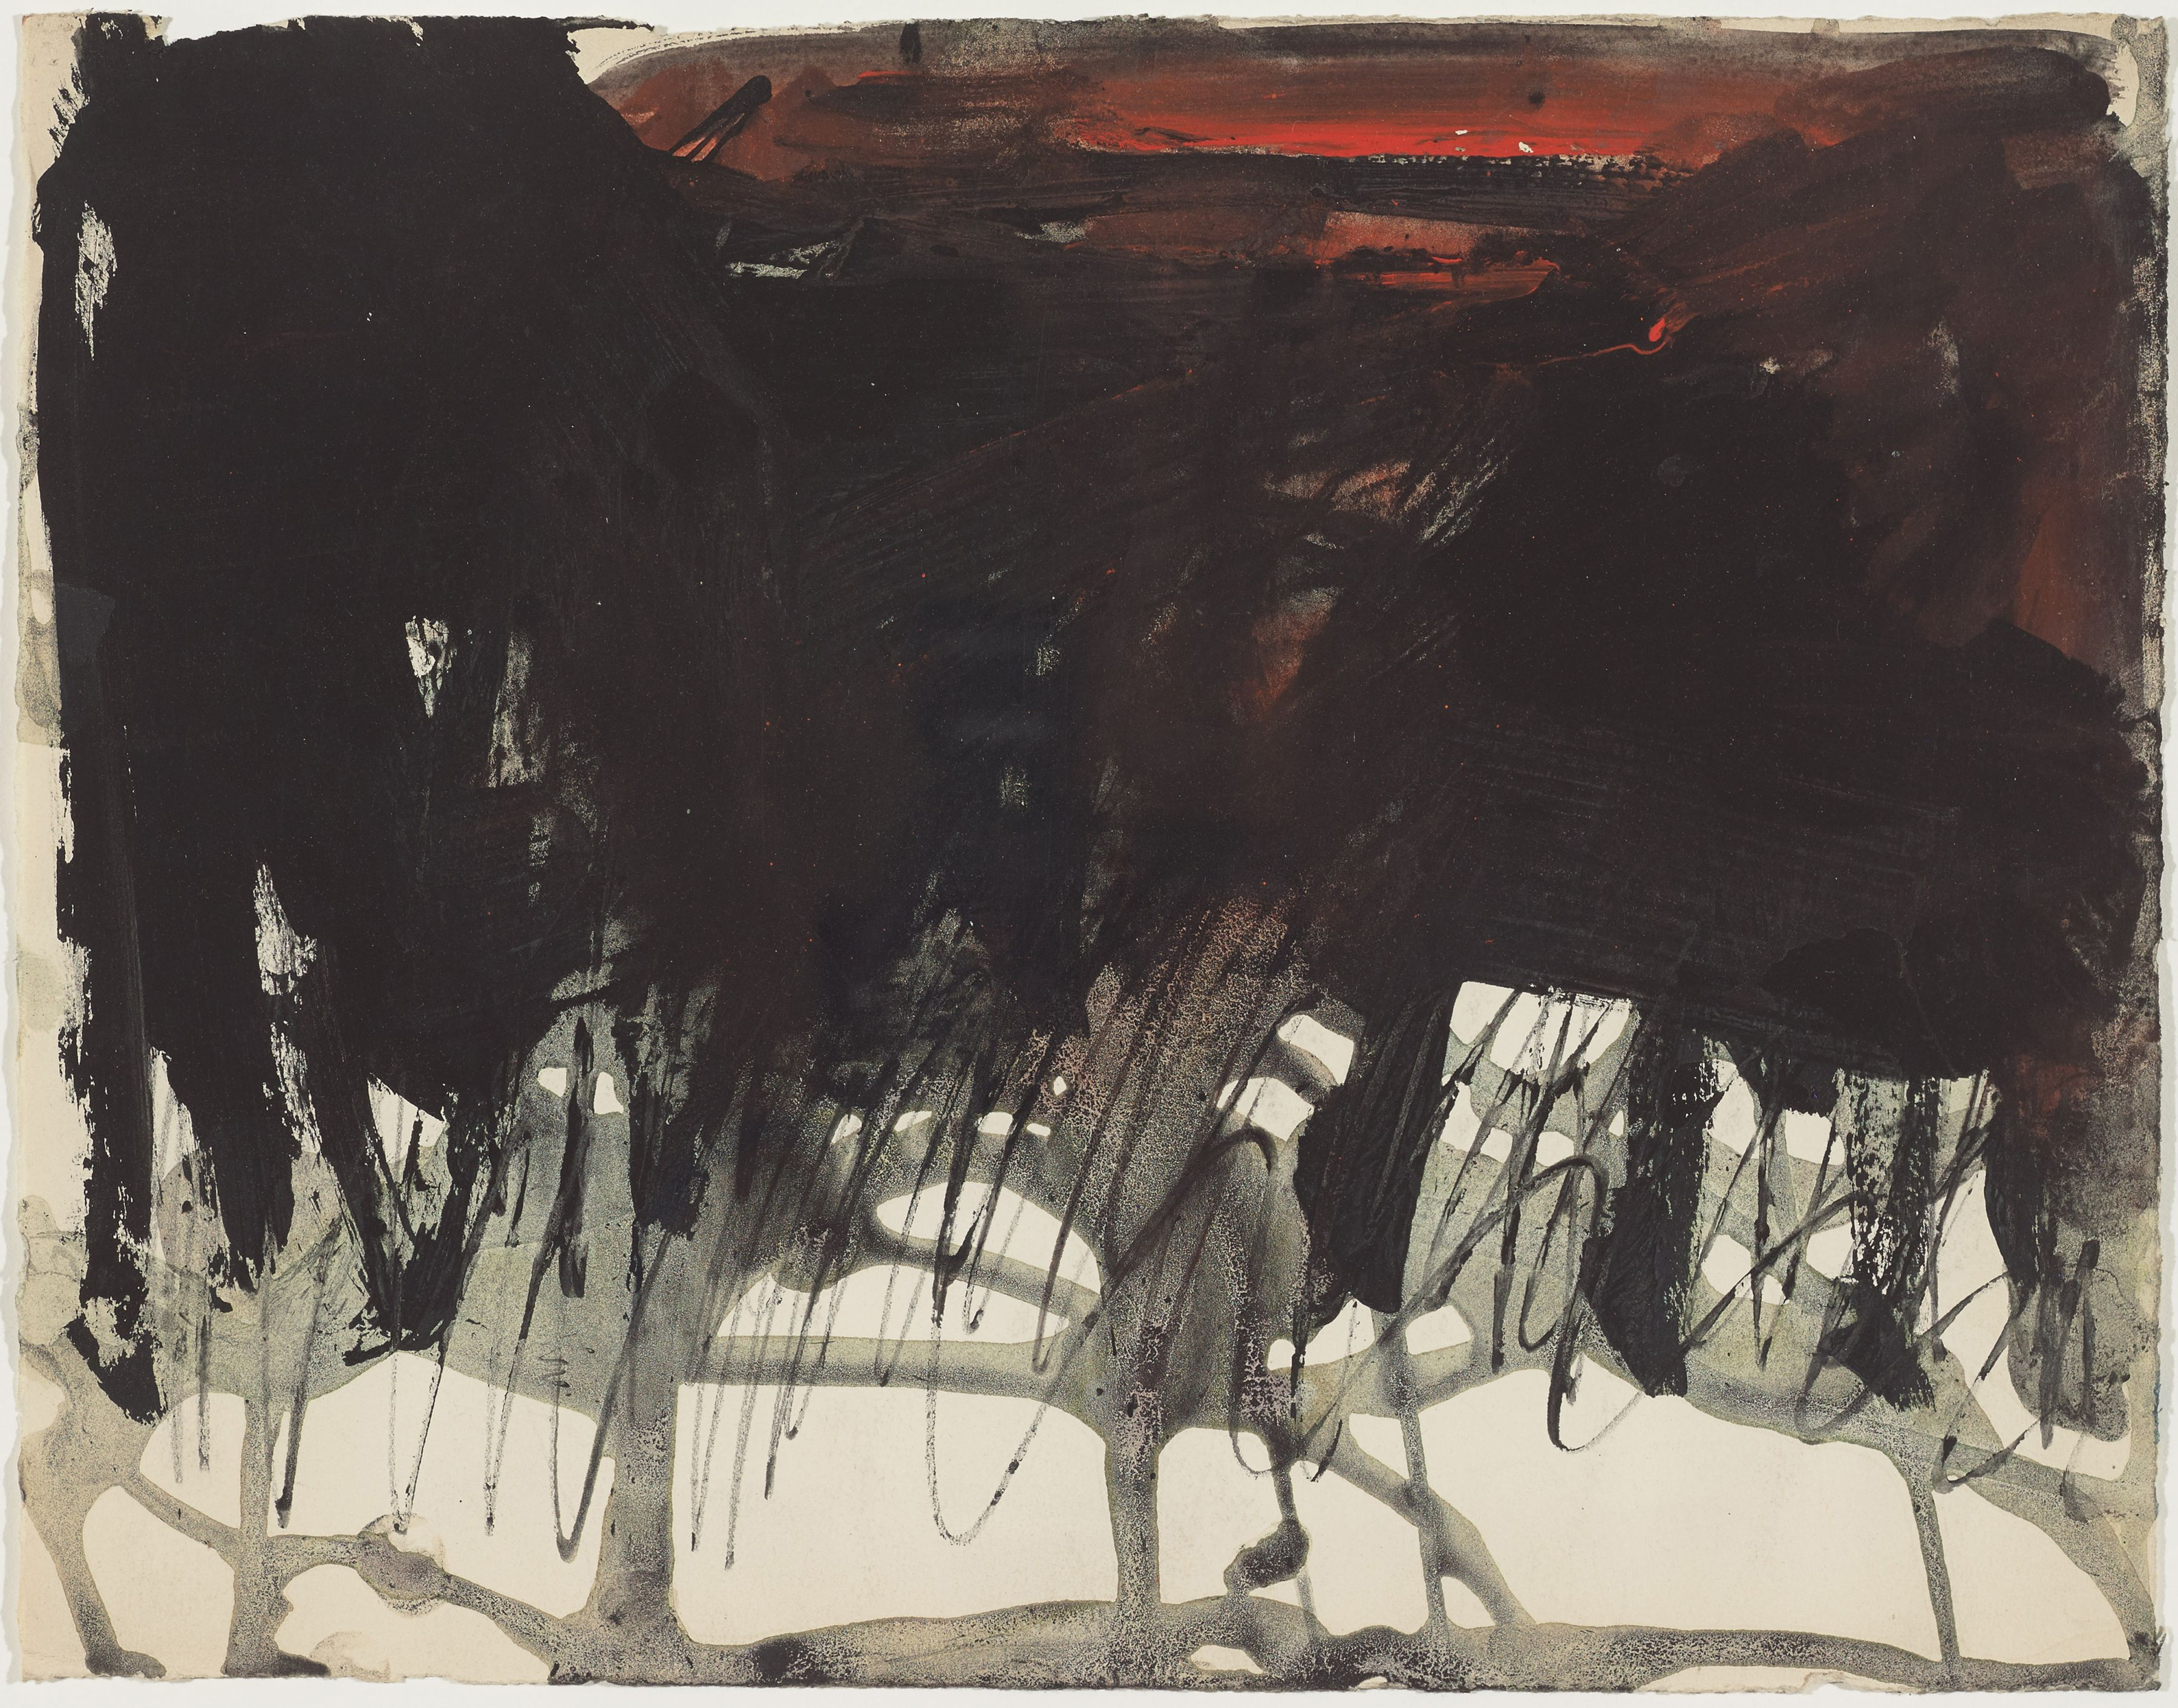 Untitled (Nightfall), c. 1961, Gouache and ink on paper